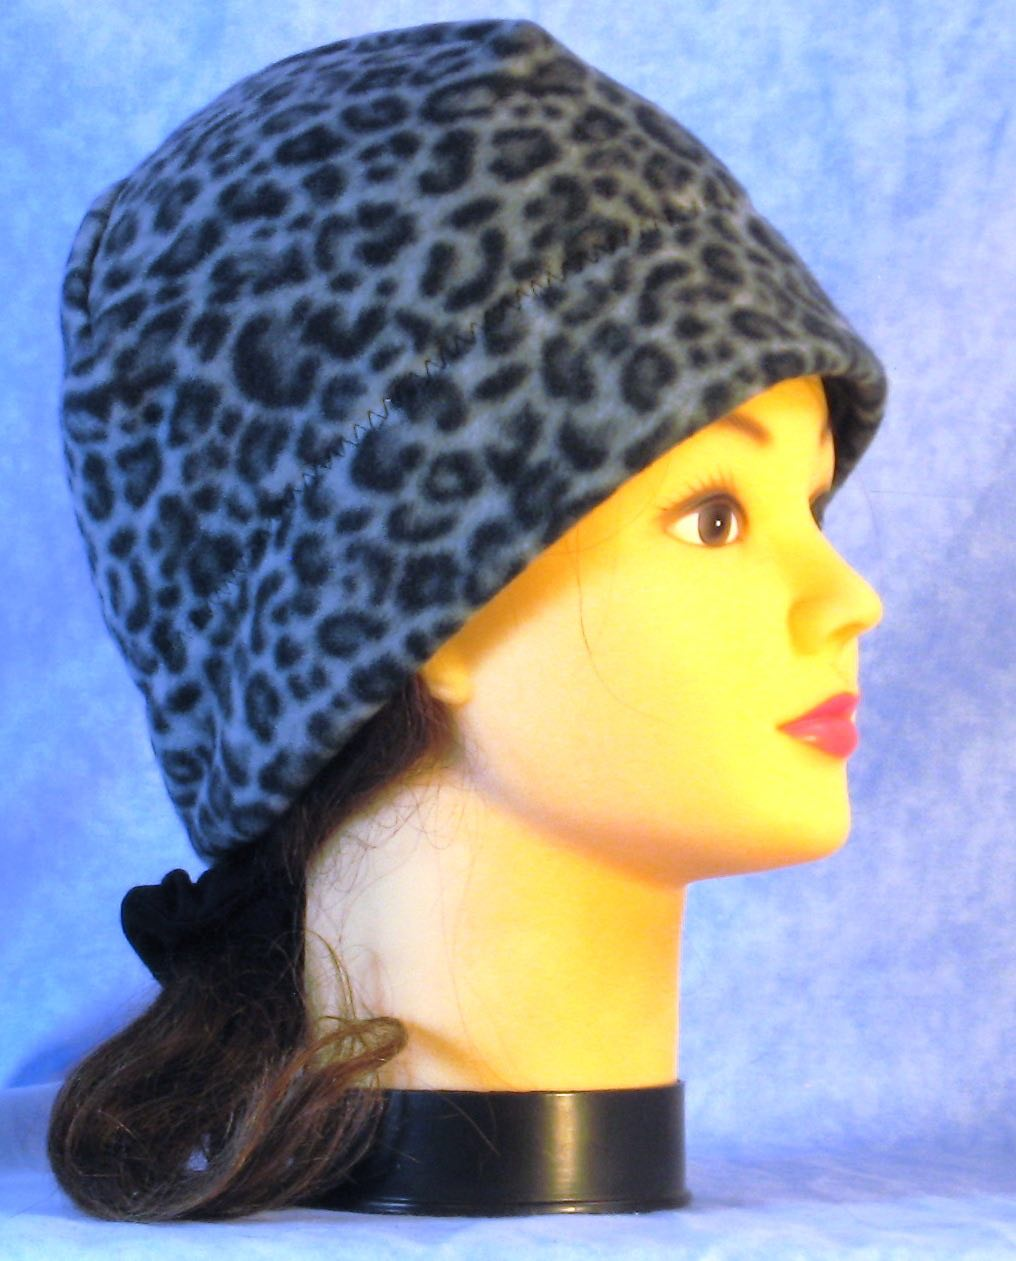 Beanie Band Cap in Black Gray Leopard-Adult S